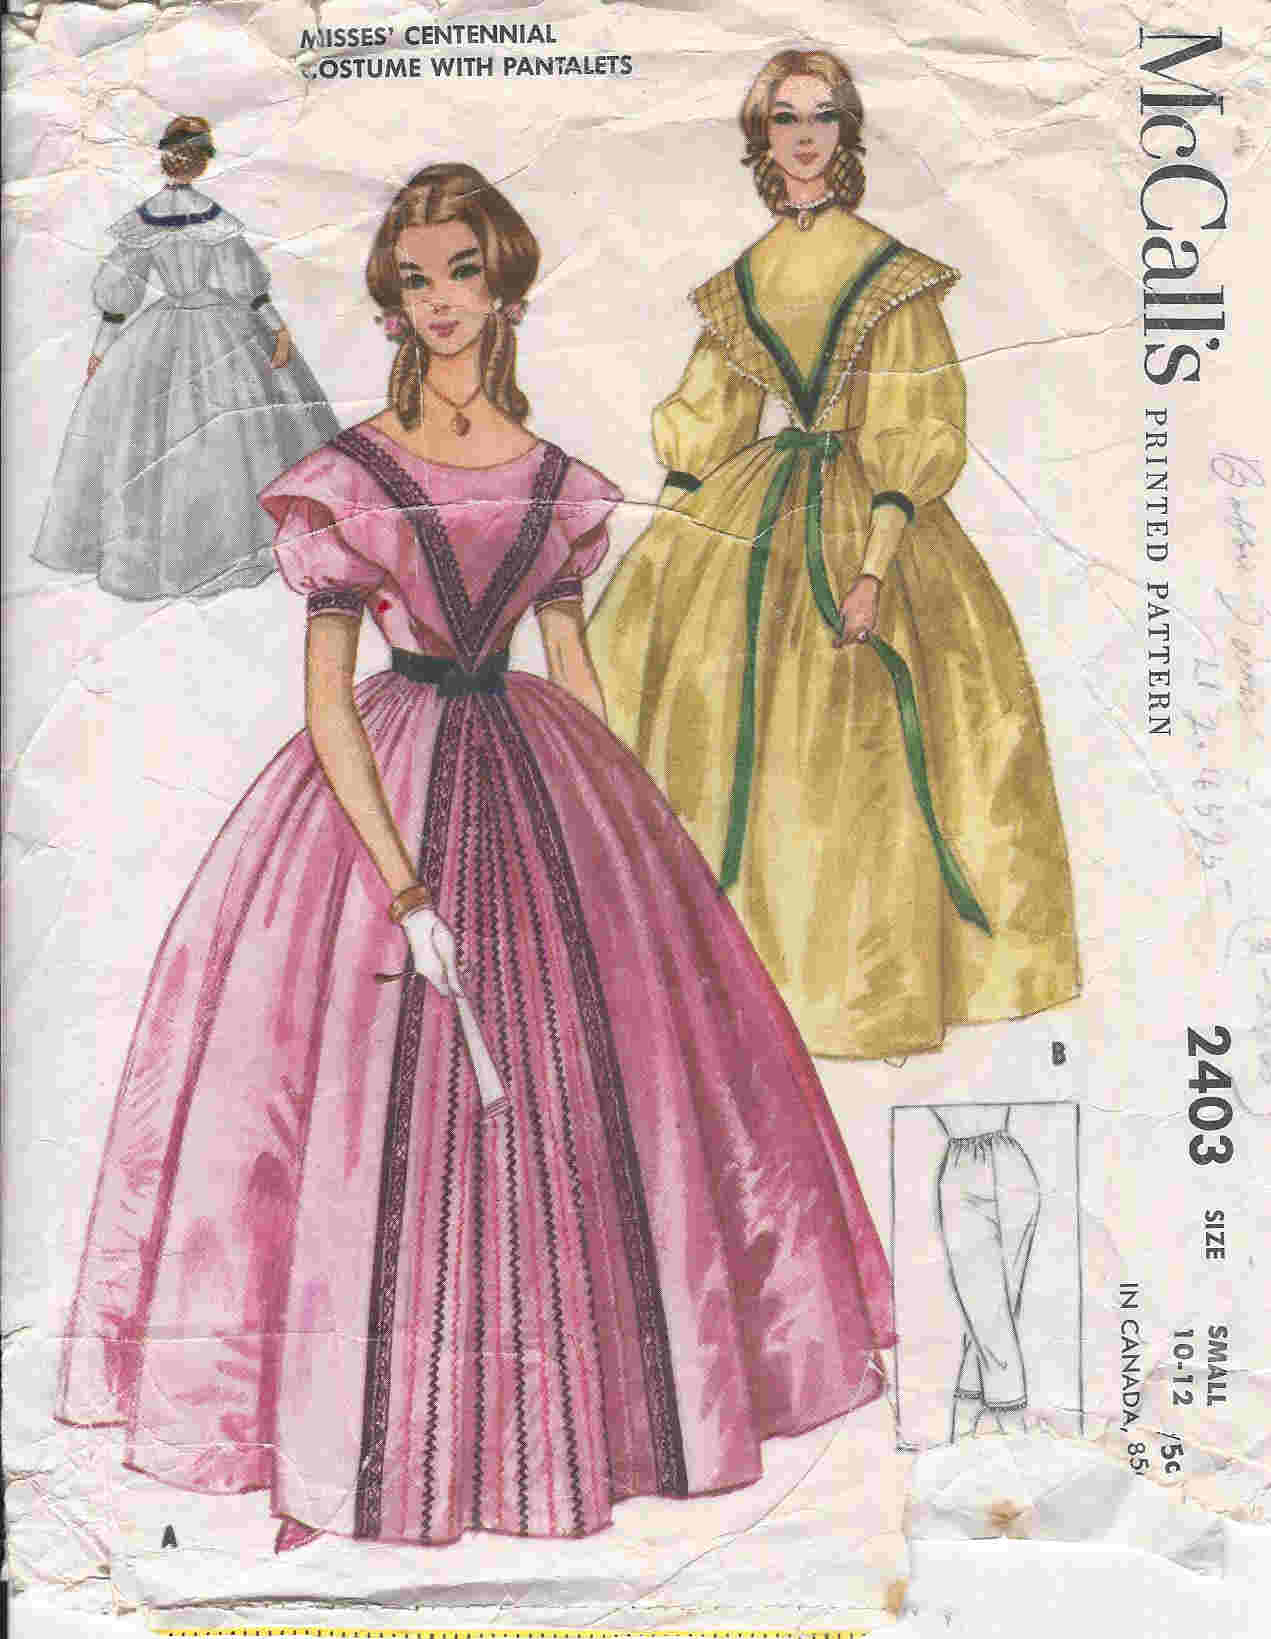 centennial gown pantalets costume sewing pattern